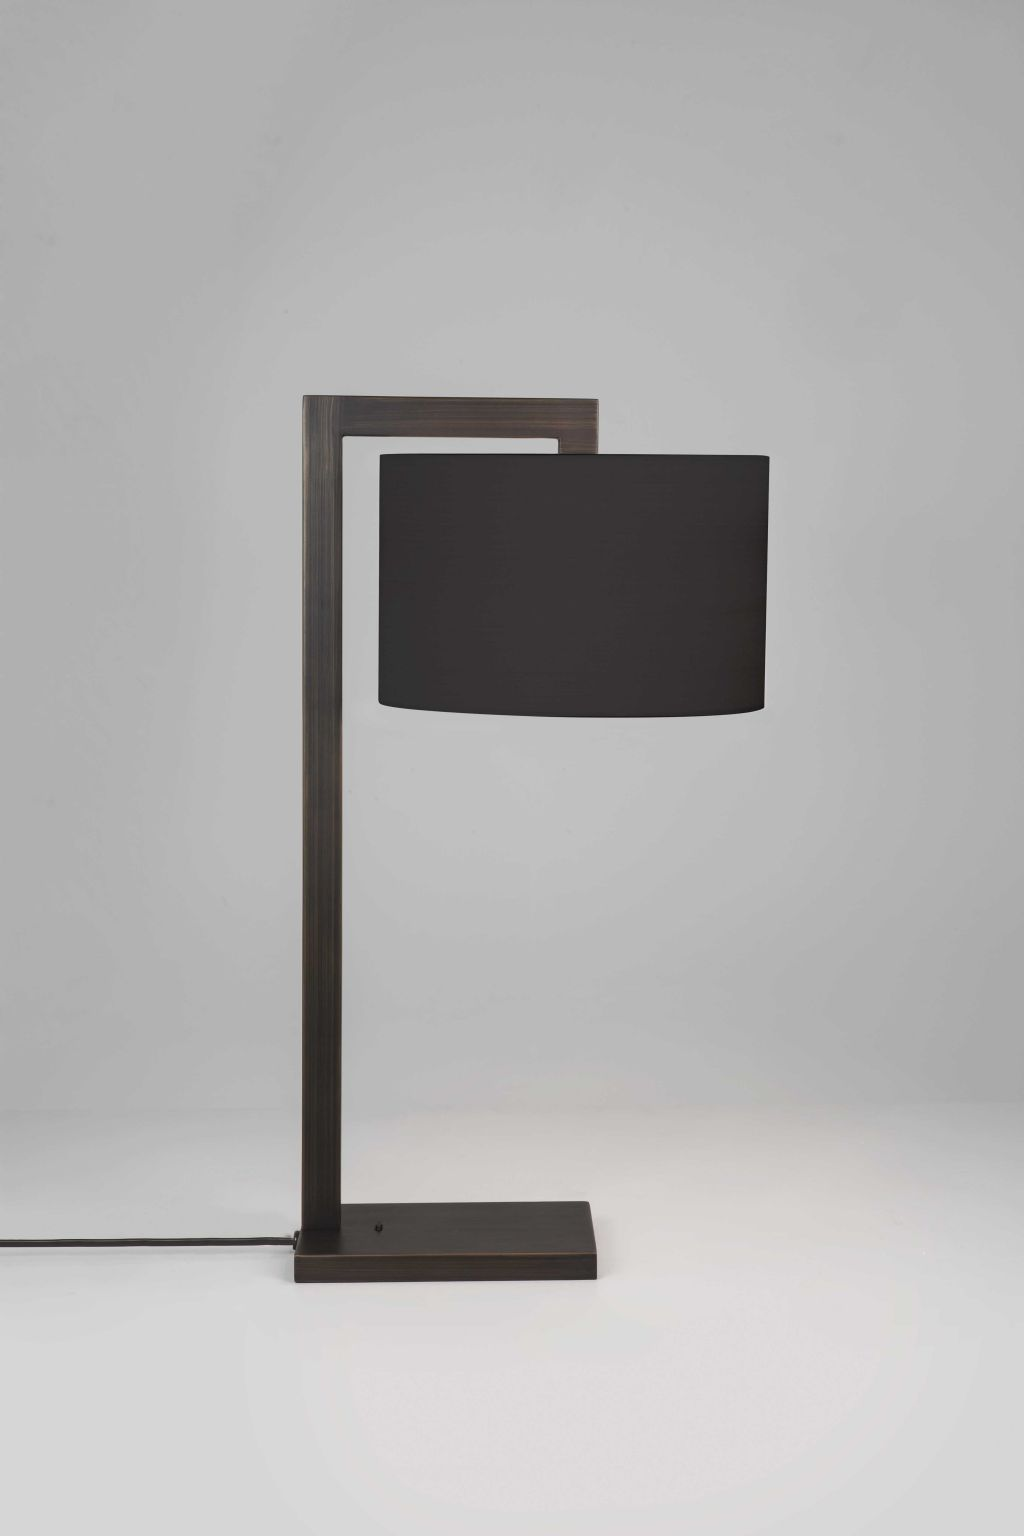 ASTRO Ravello Table Light Bronze without shade  (1222009)